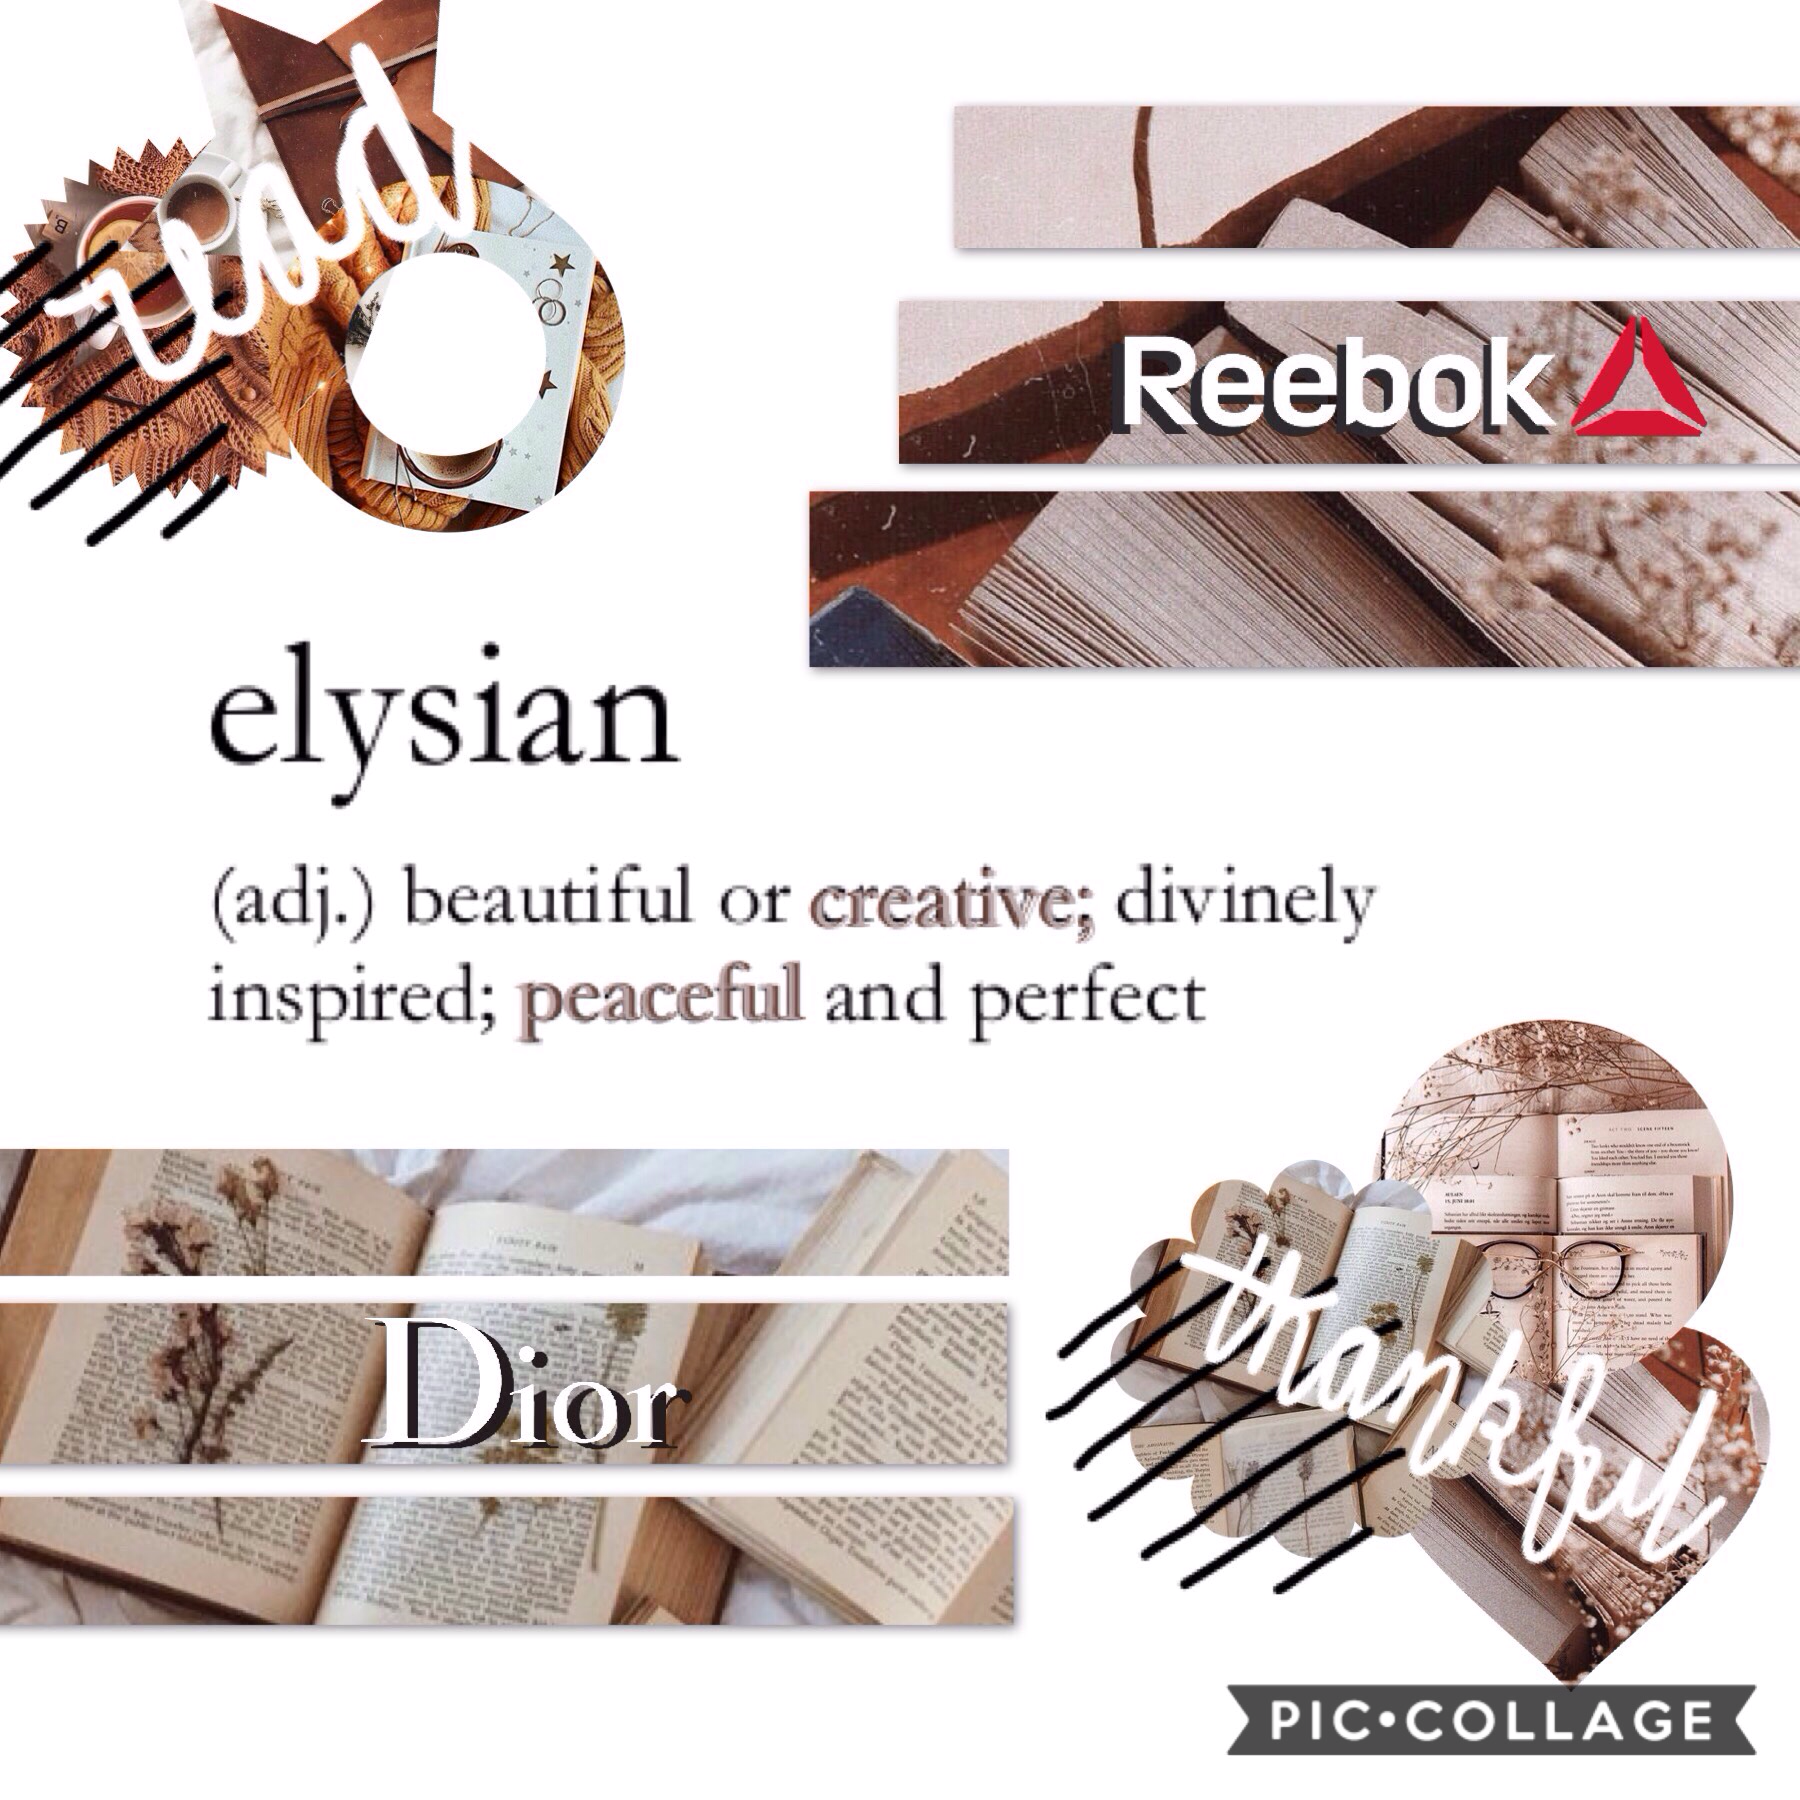 """>> elysian << """"beautiful or creative; divinely inspired; peaceful or perfect""""  ✨📖☕️  15><09><19 hey all! You've probably never heard of this but HAPPY RUOK DAY! (for info check my extras acc @positivity_pcsurveys) Hands up if you're a bookworm! 📚🐛🙋 YUSSSS"""